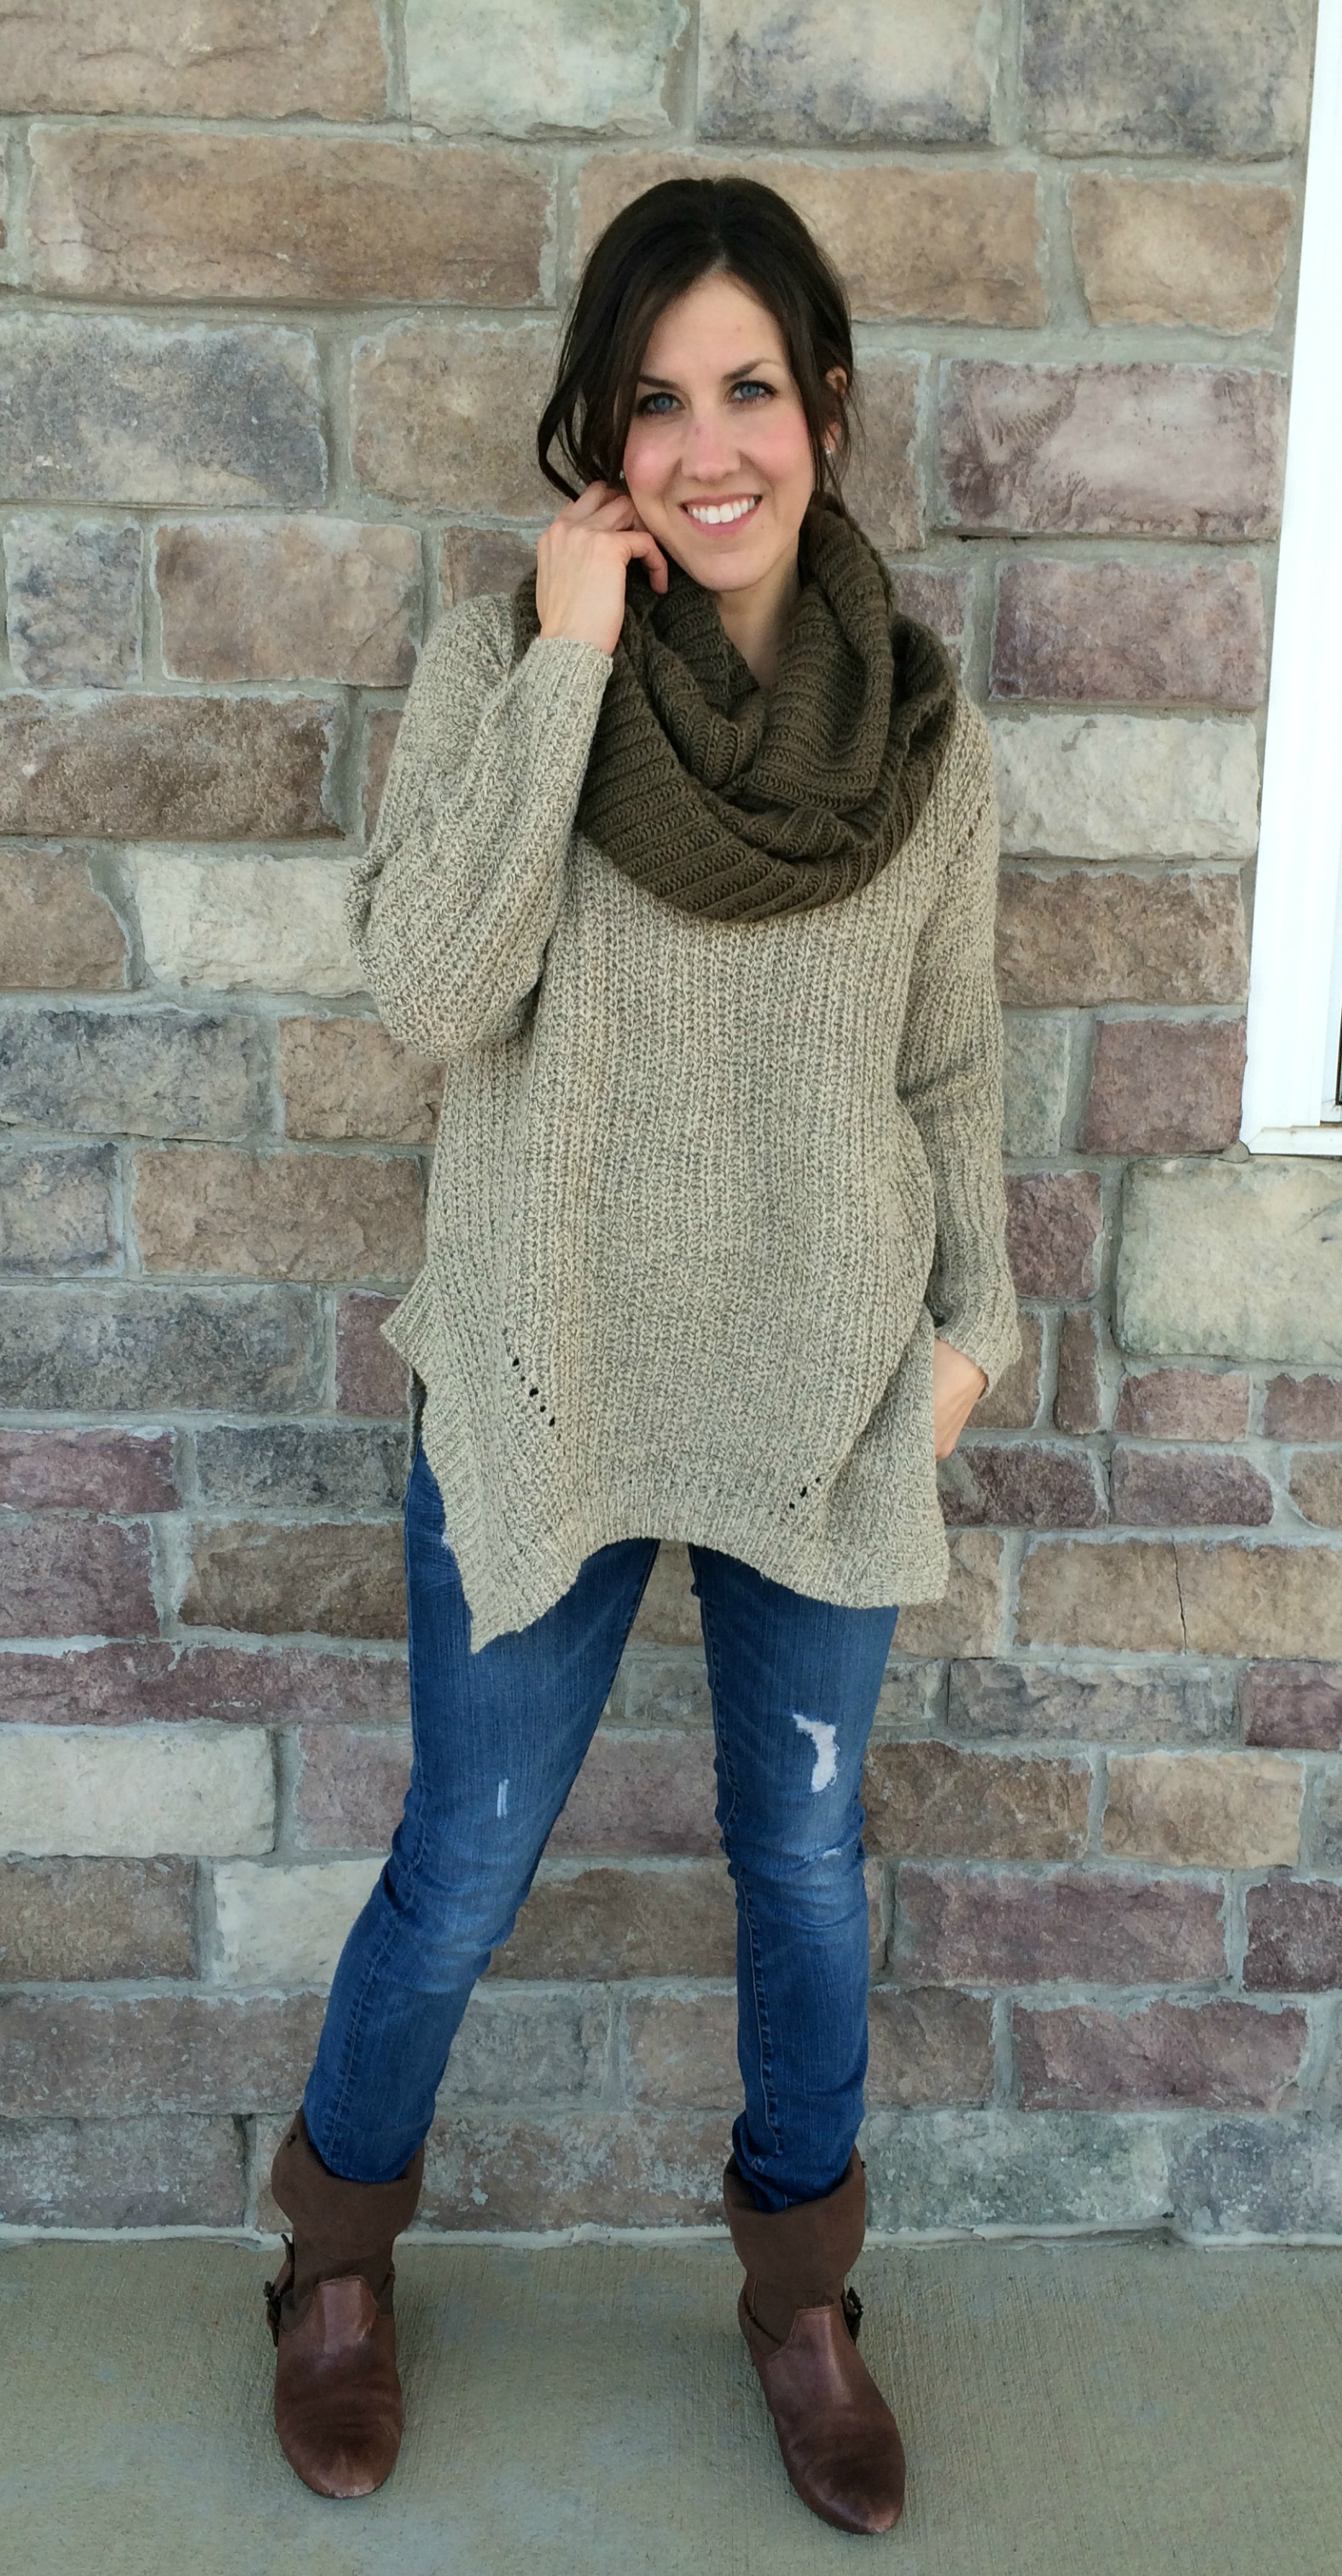 How To Wear A Slouchy Sweater 1 Piece Styled 3 Ways